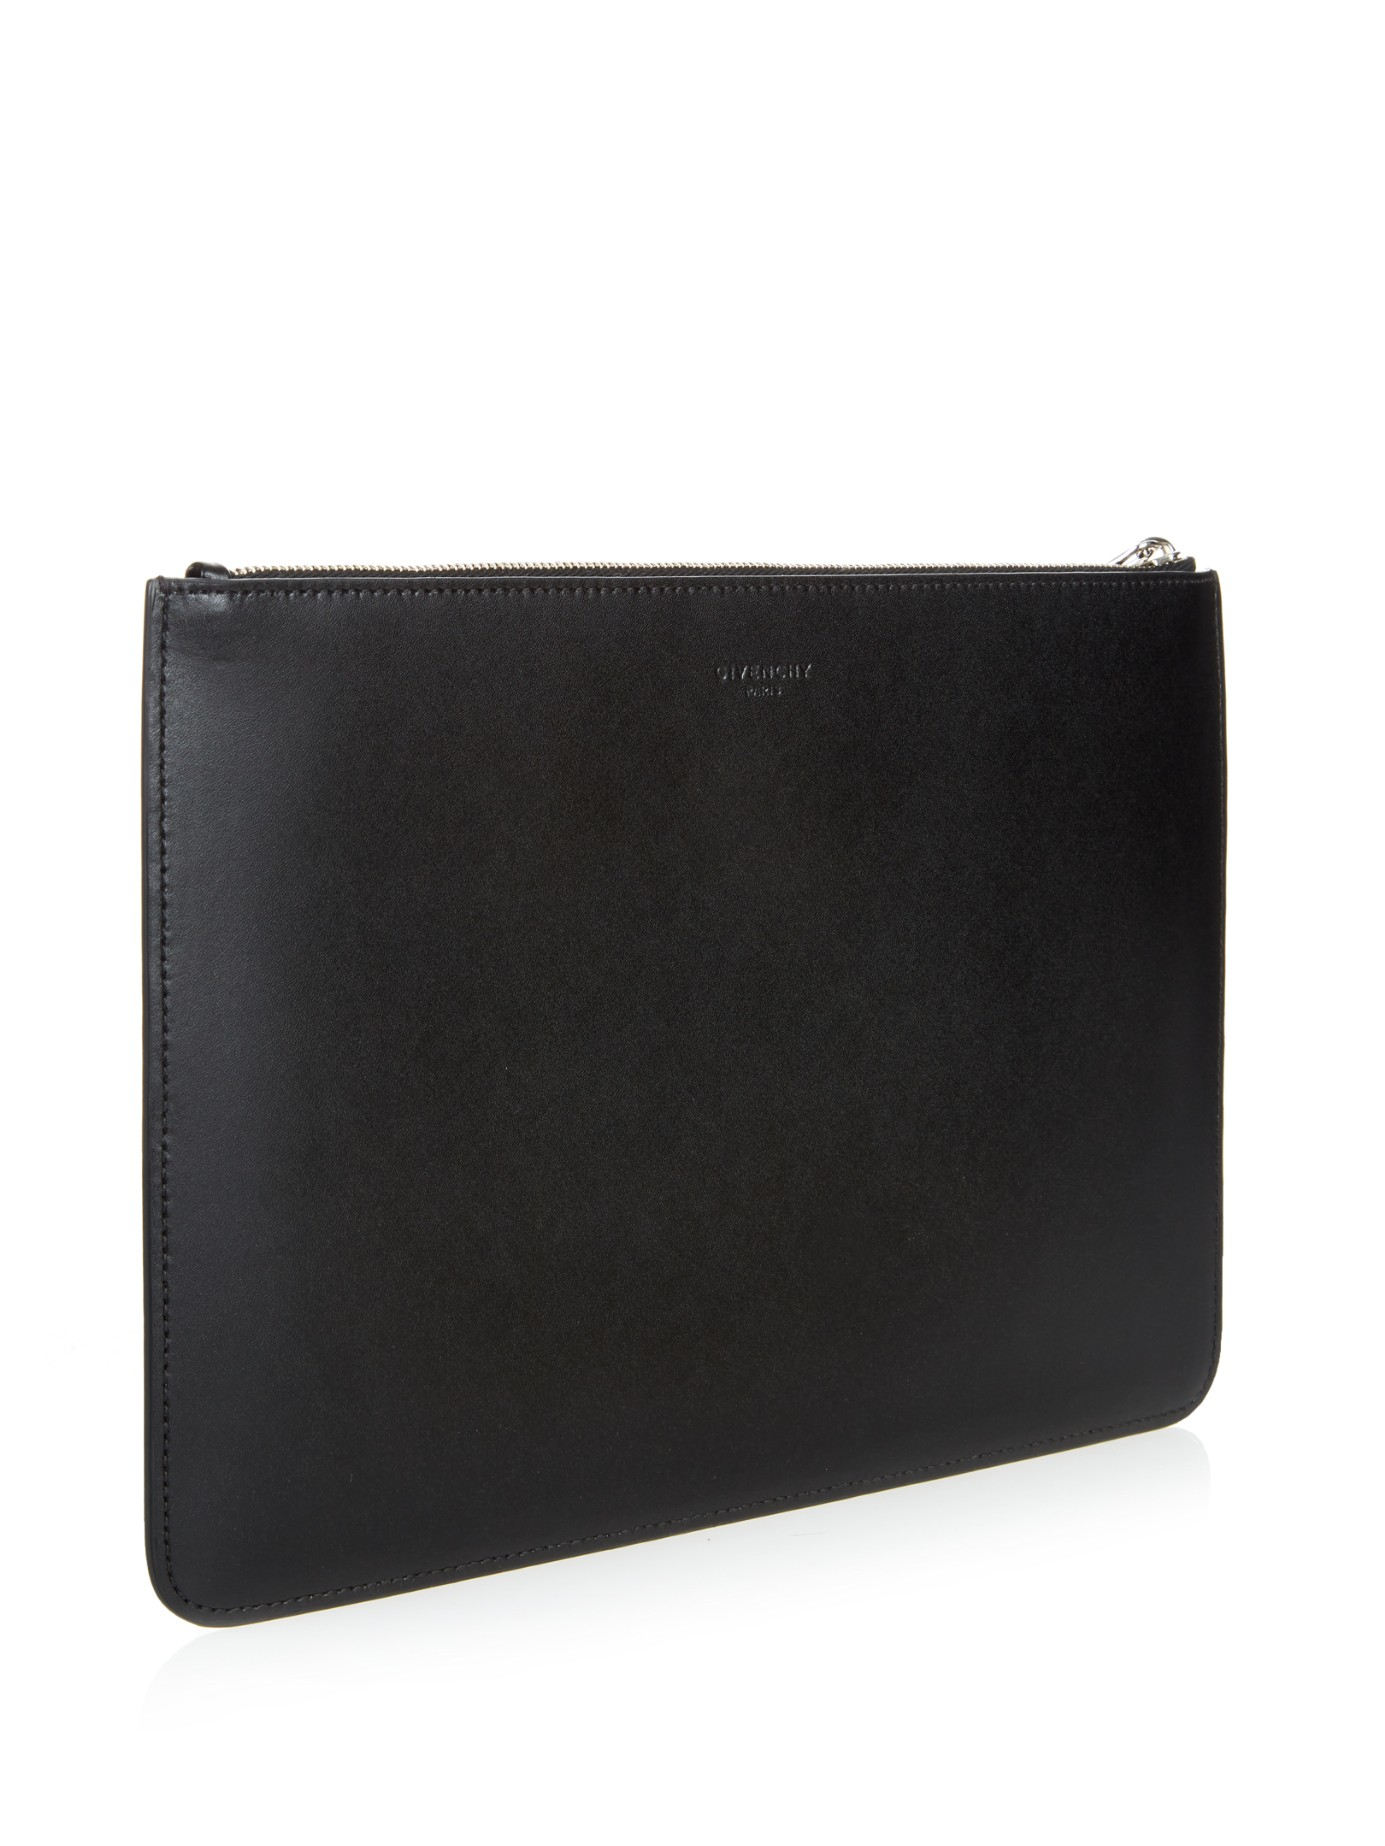 d5db97ca55 Lyst - Givenchy Star Smooth-leather Clutch in Black